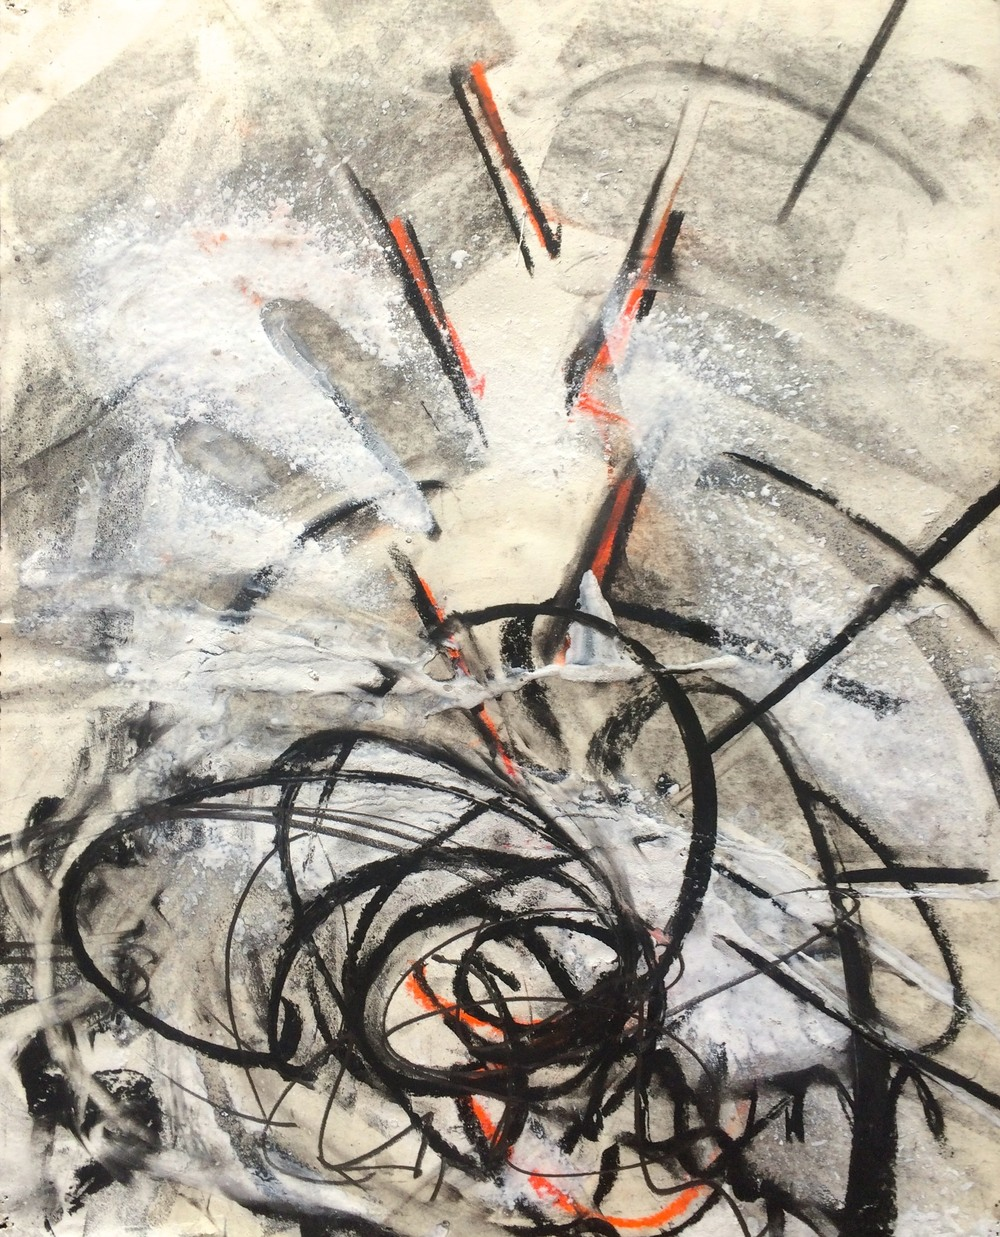 "Untitled 1990 1990; charcoal, acrylic, graphite, conte on paper; 17 x 13 3/4"" Copyright © Tennyson Woodbridge, 1963 to present; Collection Beki Coagan/Damon Scharlatt"